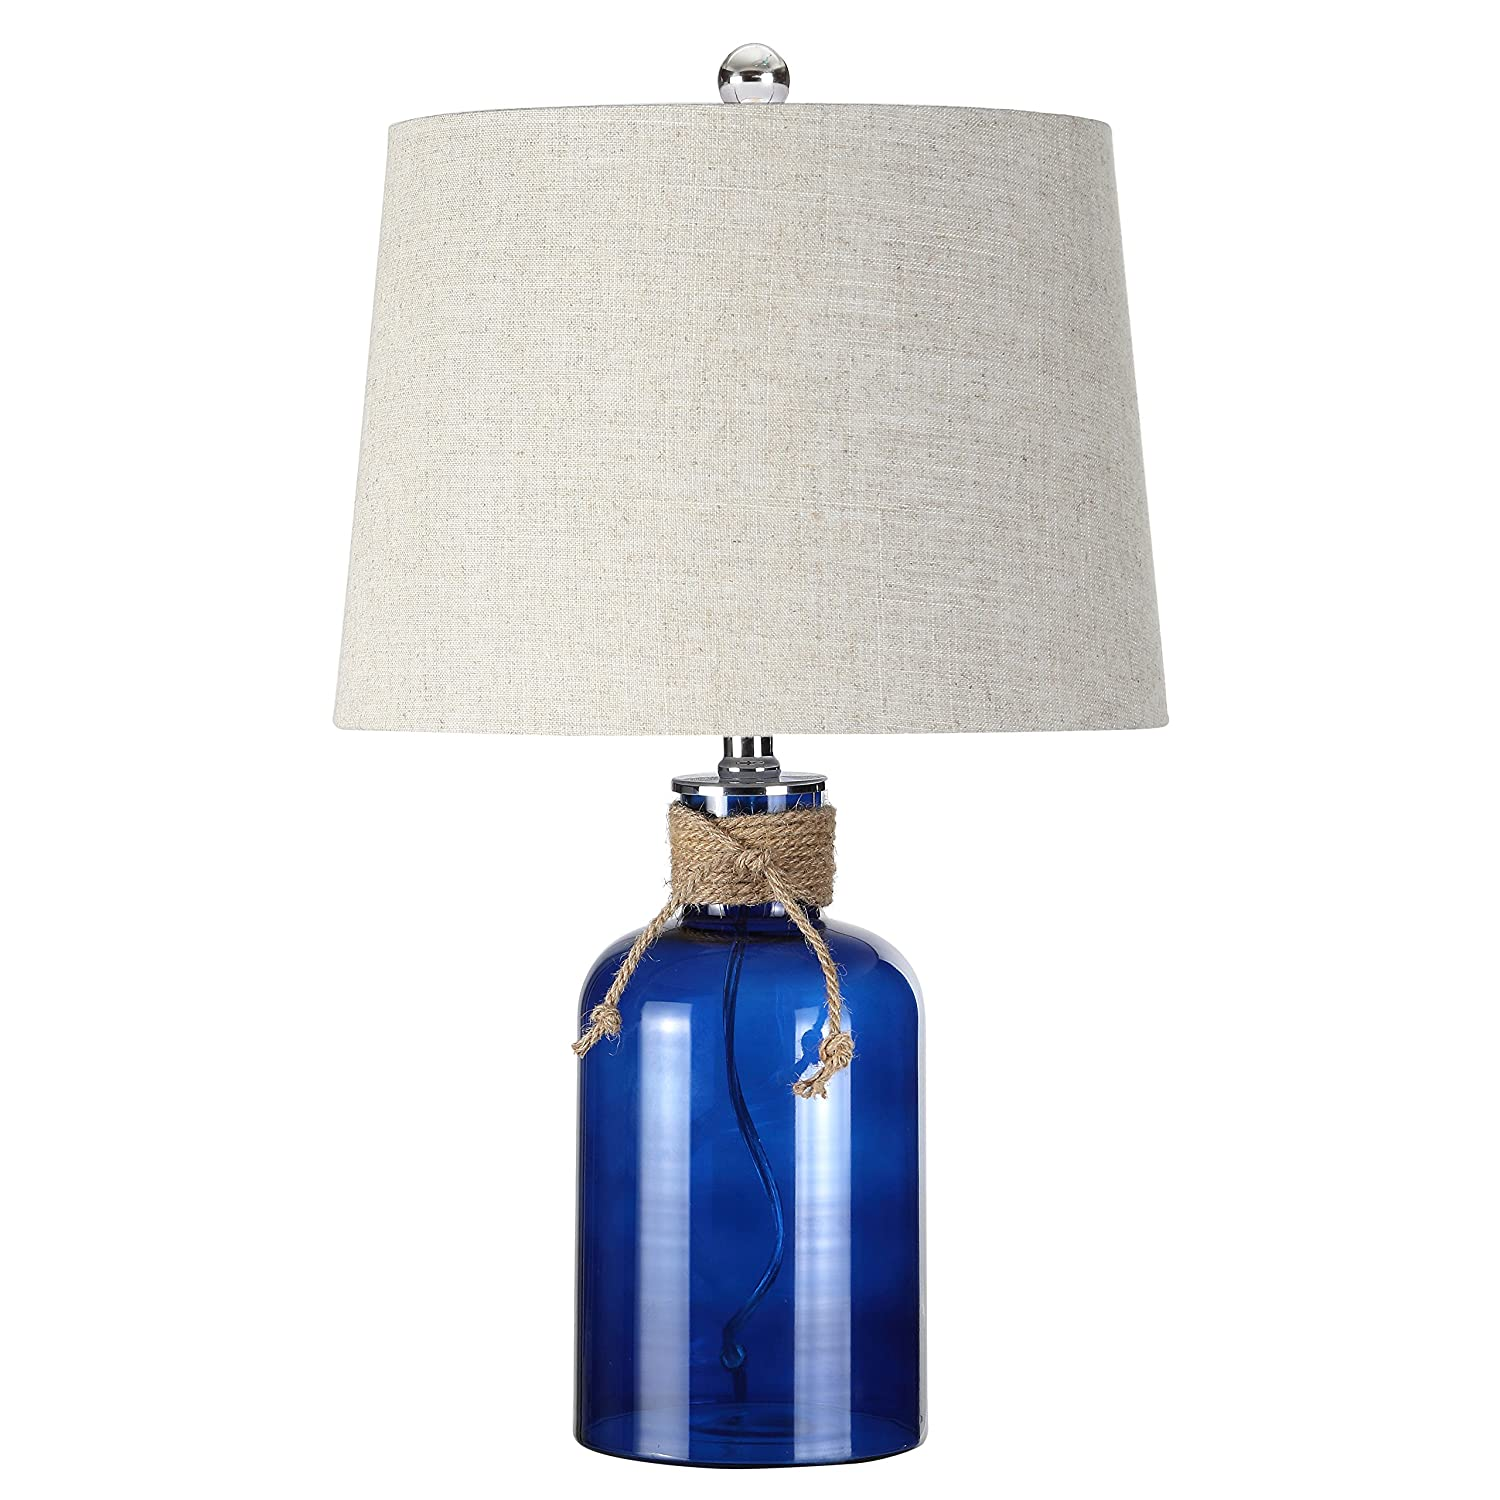 "Jonathan Y JYL1004A Table Lamp, 14"" x 23.5"" x 14"", Cobalt with Gray Shade"